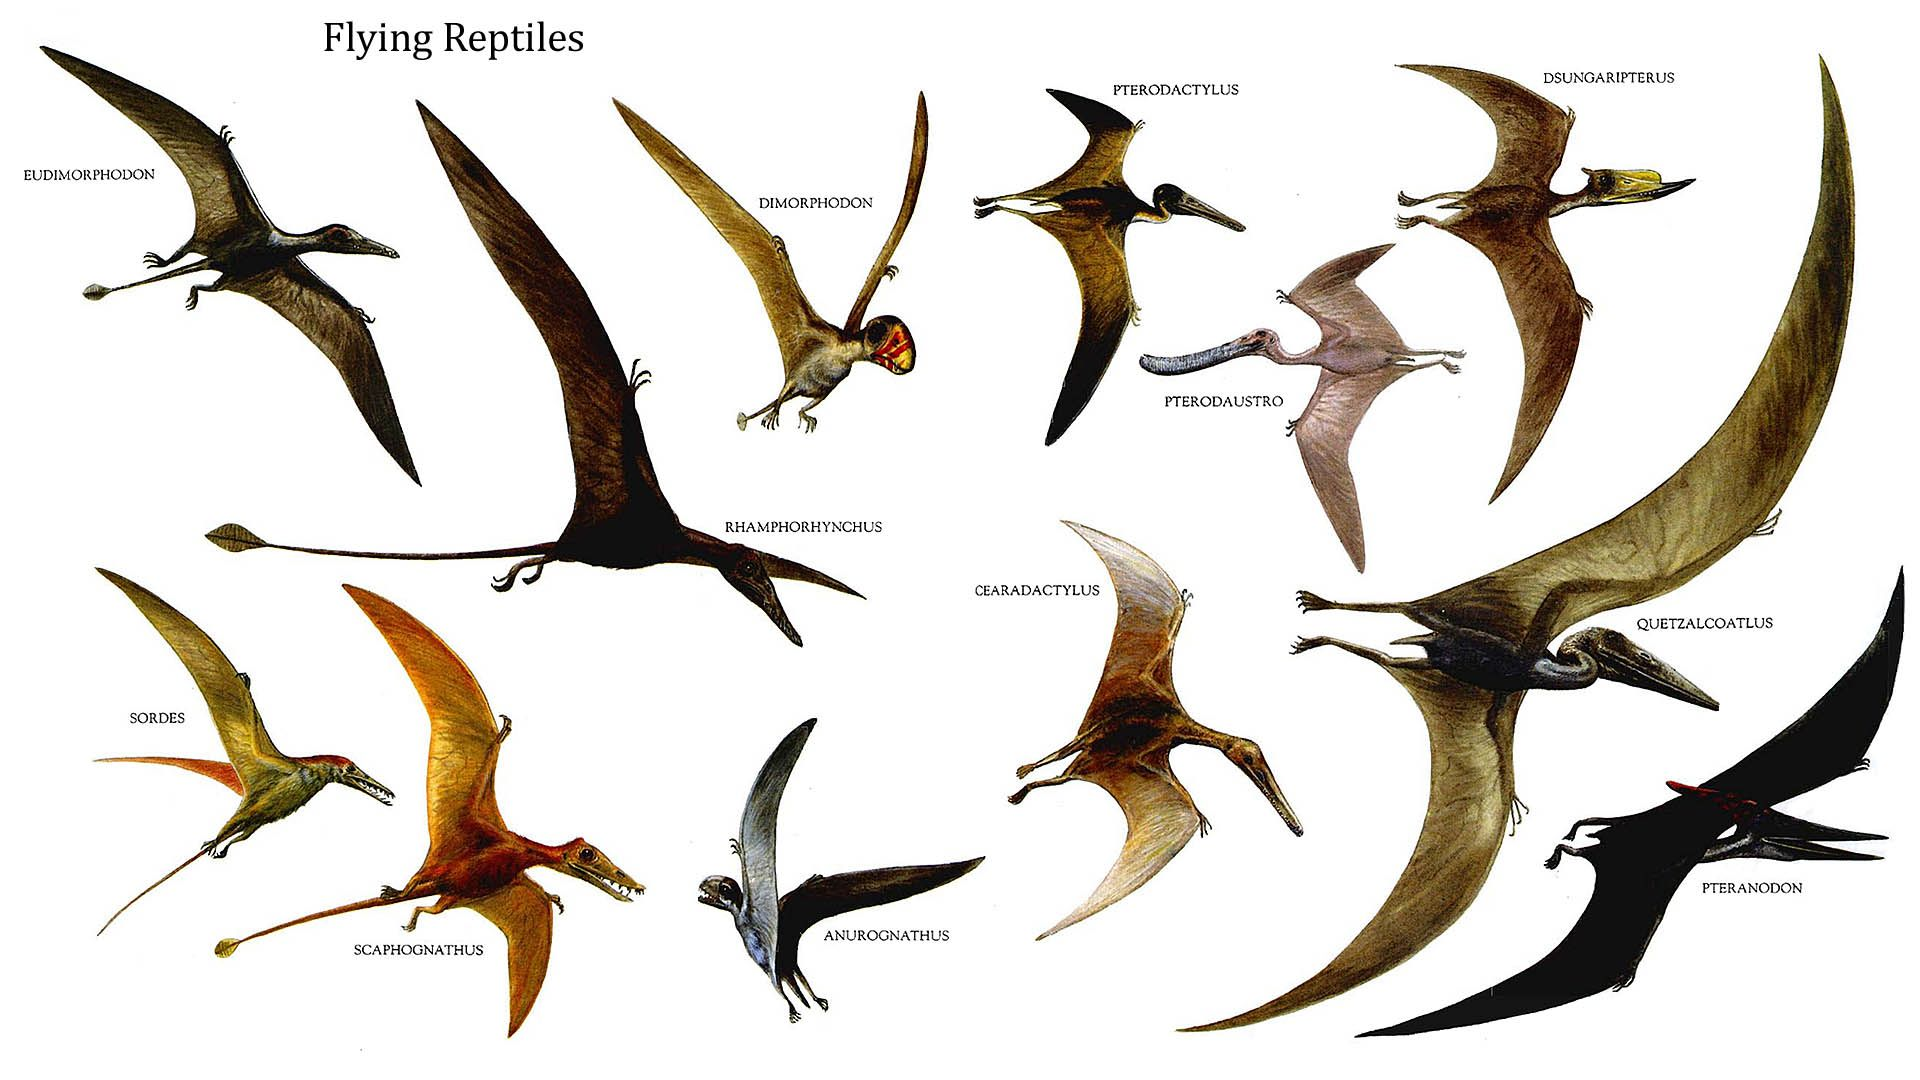 dinosaurs and birds essay Bird-from-dinosaur theory of evolution challenged: was it the other way around date: february 10, 2010 source: oregon state university summary: a new study provides yet more evidence that birds did not descend from ground-dwelling theropod dinosaurs, experts say, and continues to challenge decades of accepted theories about the.